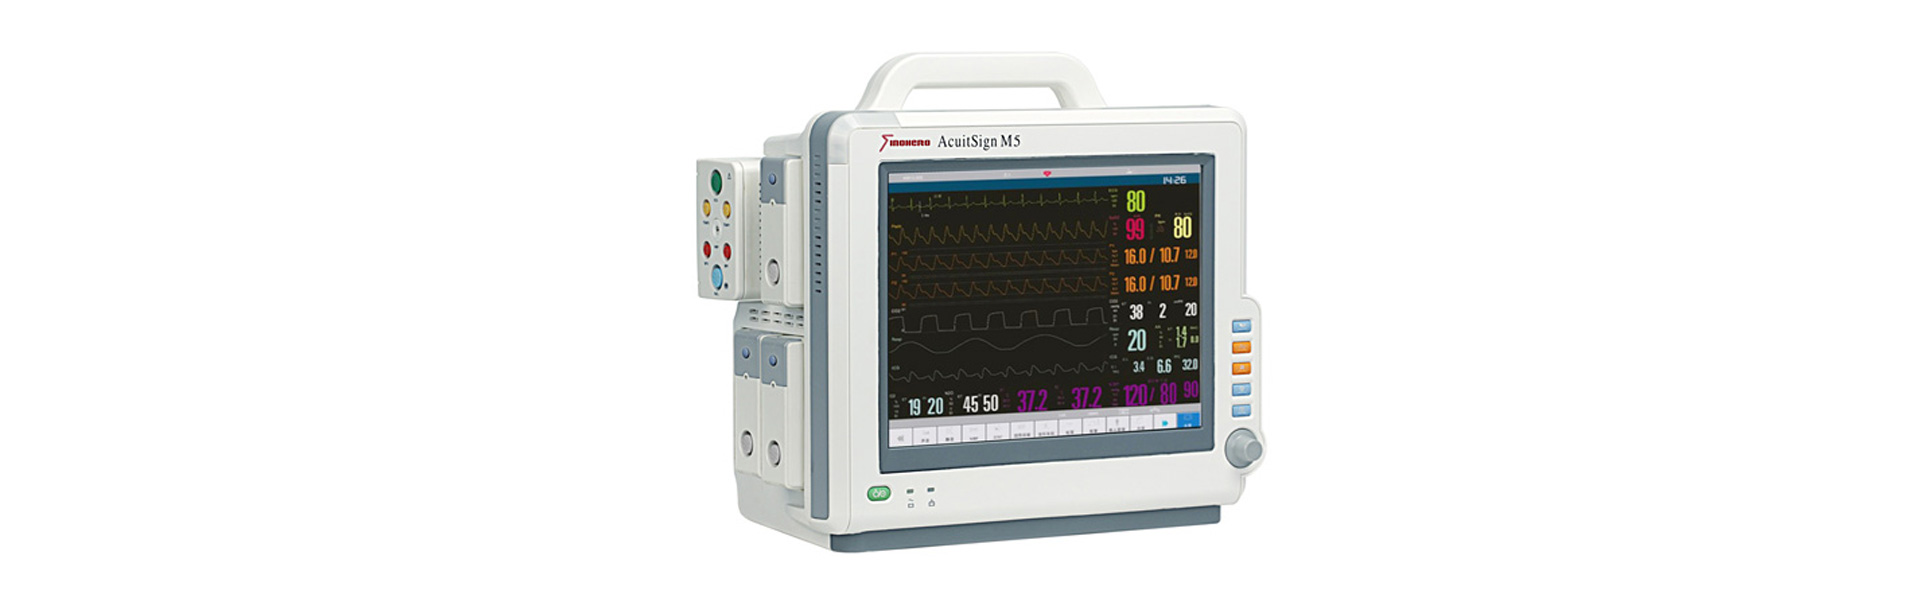 M5 Patient Monitoring System